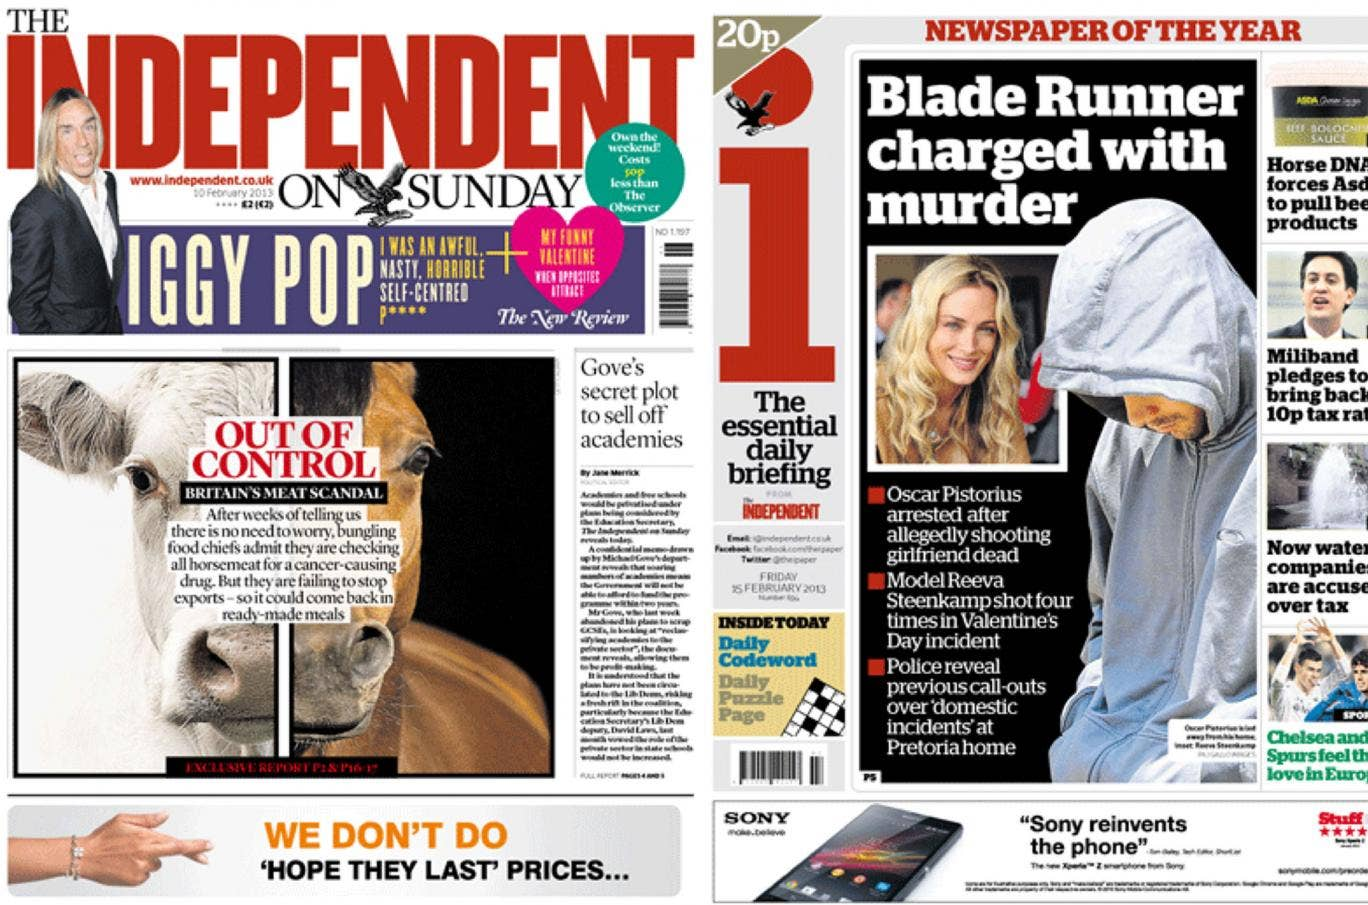 The Independent on Sunday's readership grew by 12 per cent to 547,000 while the i newspaper now has 612,000 readers